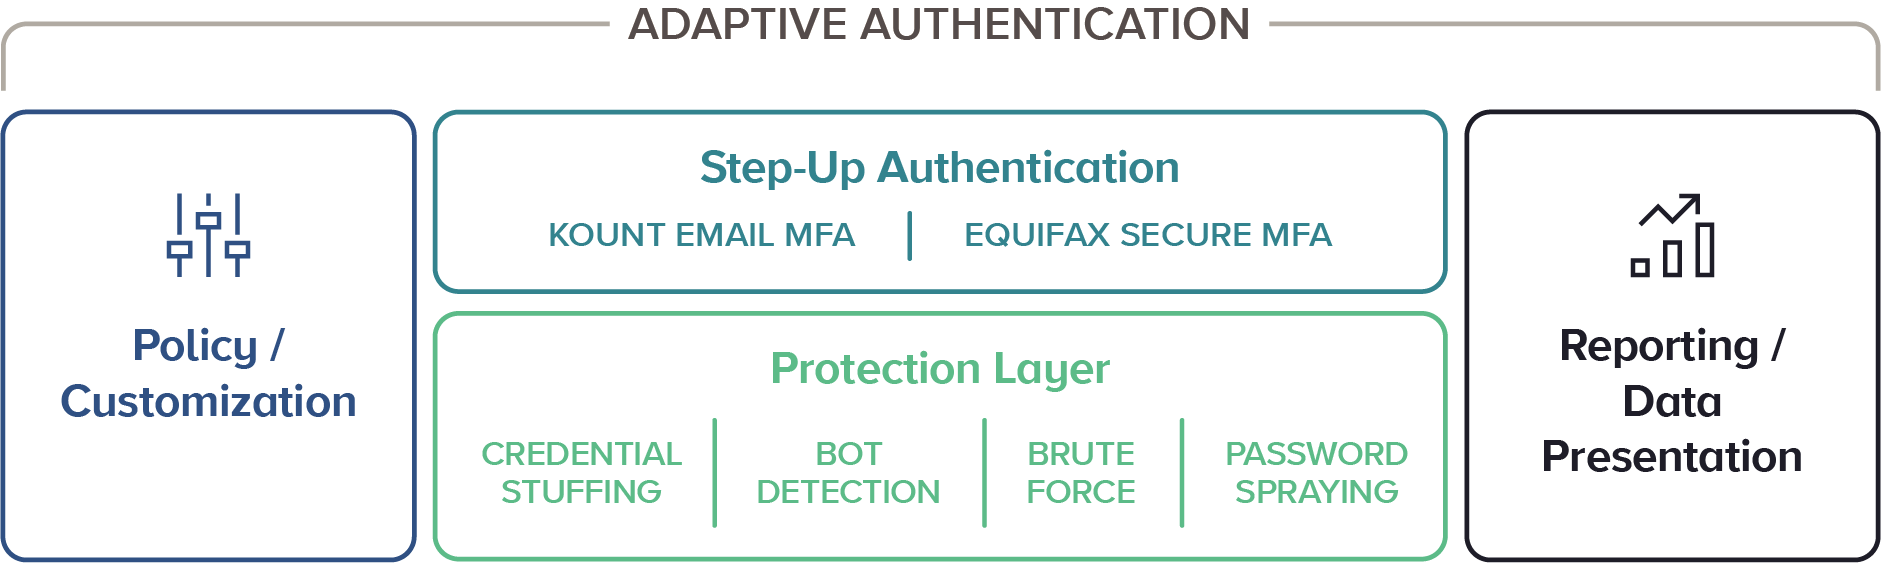 Account Takeover ATO Adaptive Authentication